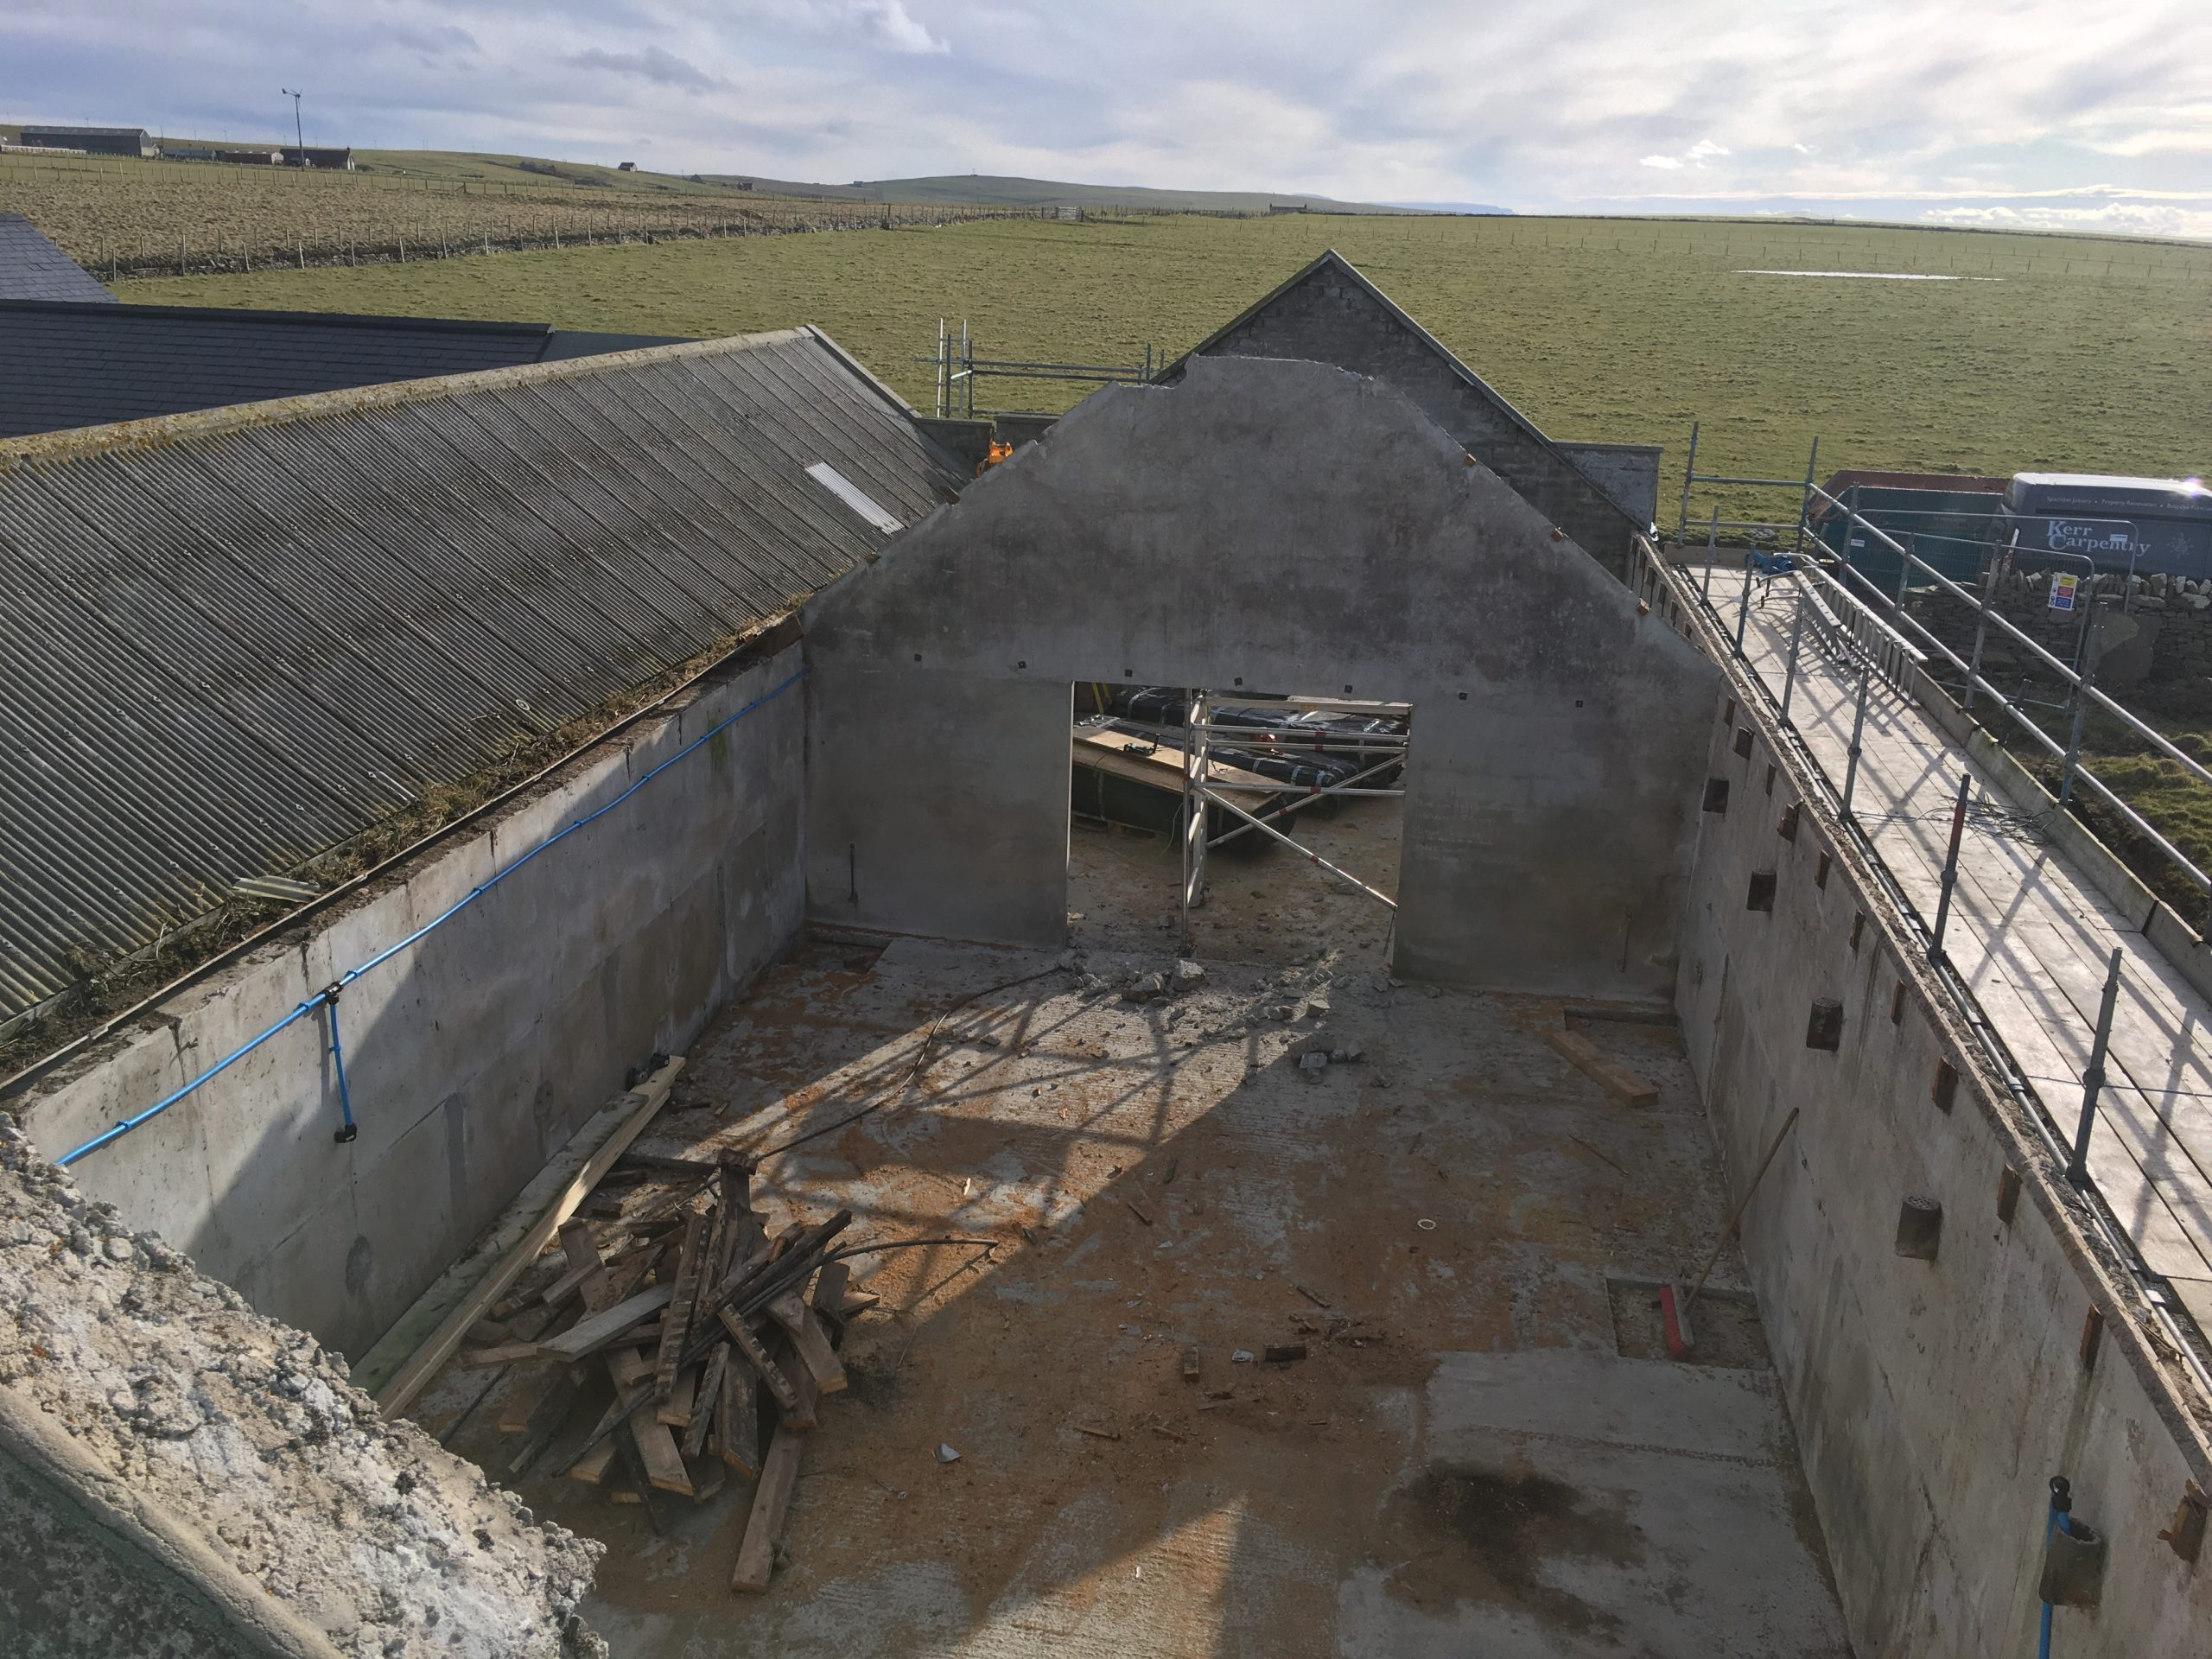 Old Roof Removed From Outbuilding.